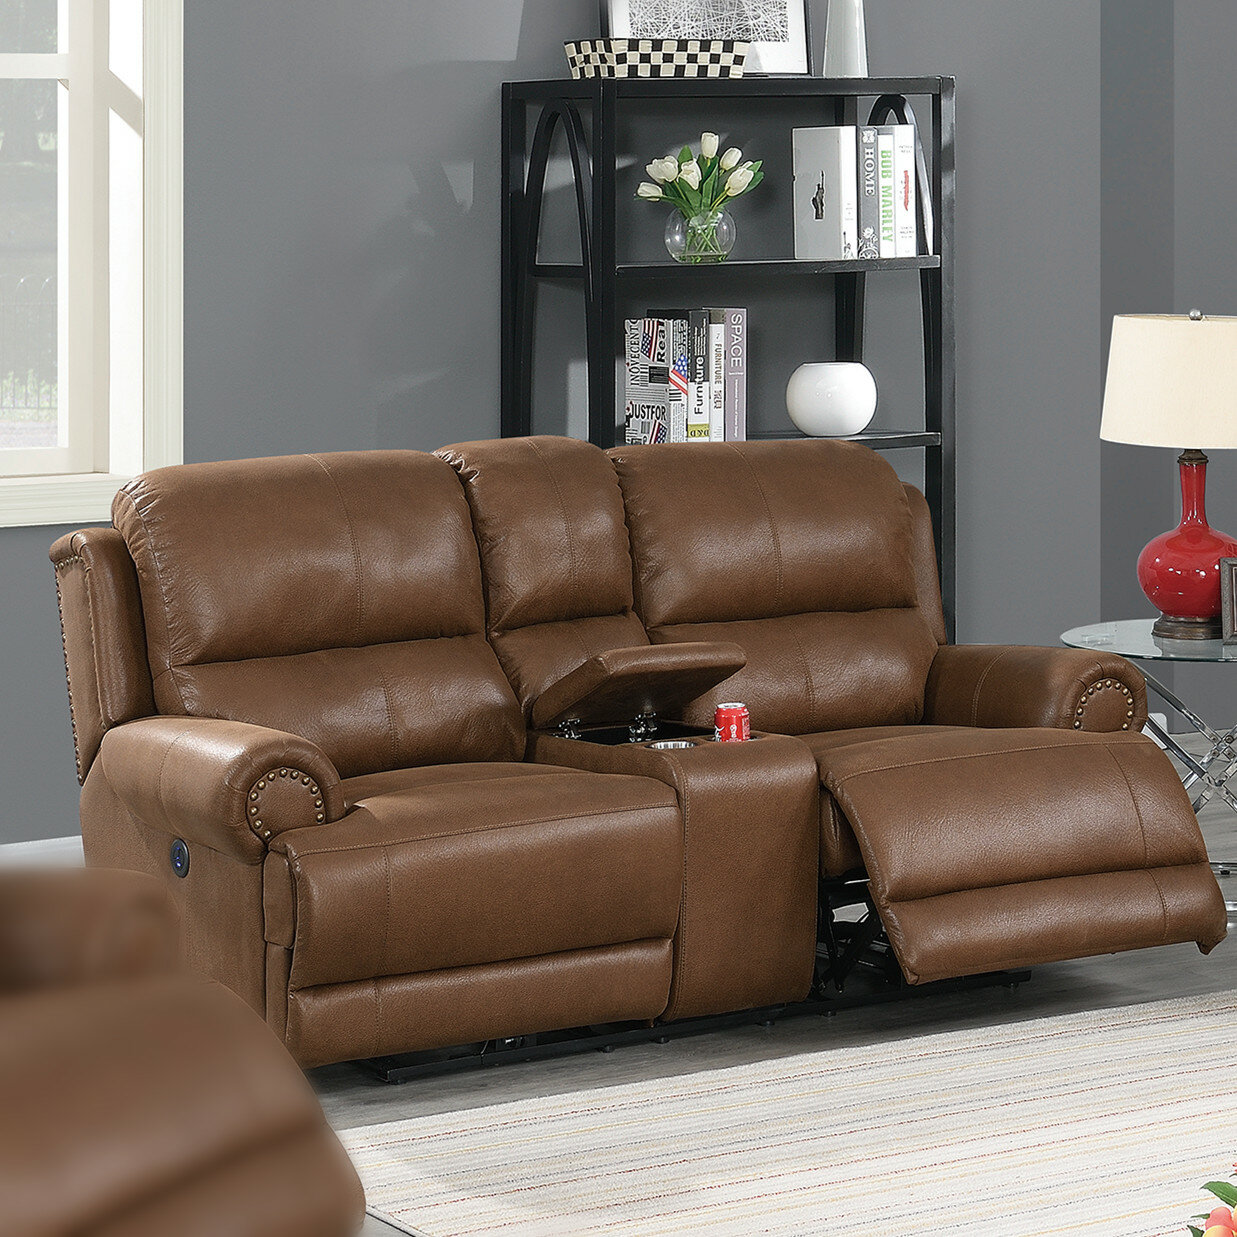 Groovy Careen Reclining Loveseat Caraccident5 Cool Chair Designs And Ideas Caraccident5Info